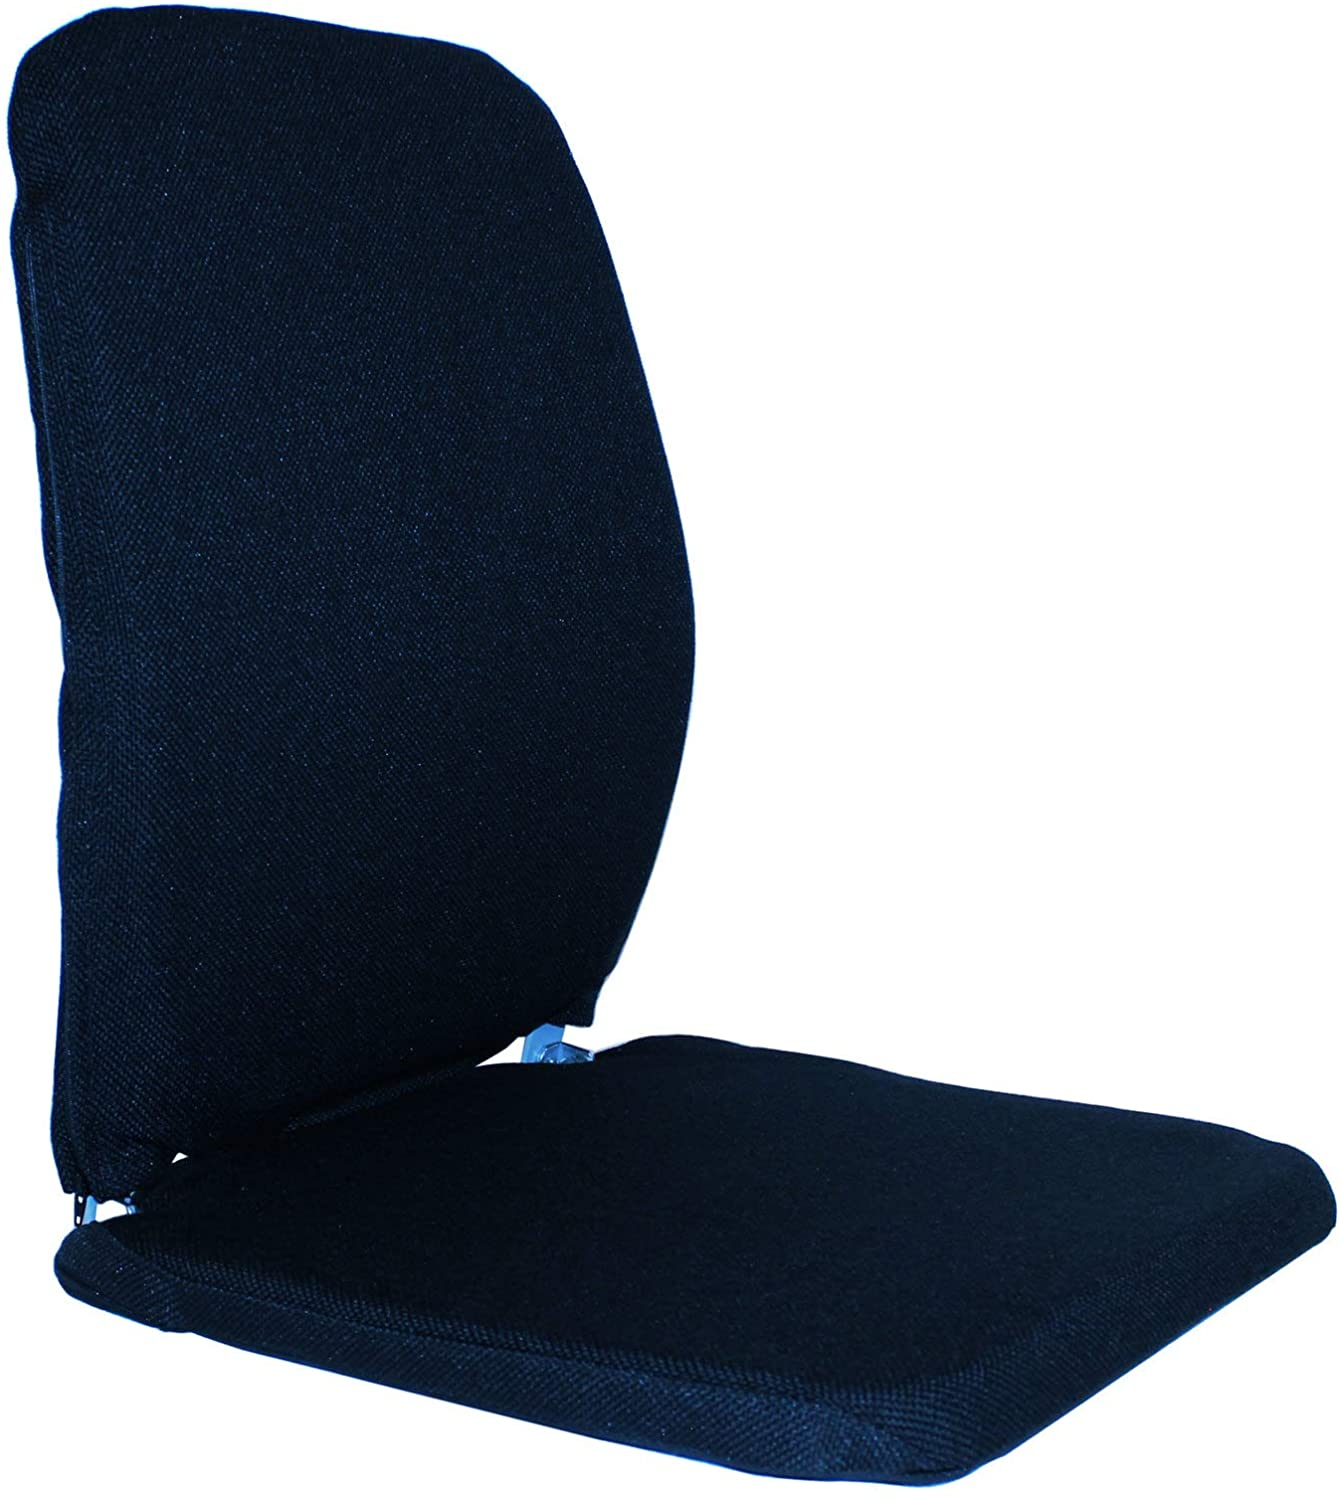 Q QUALITY BRAND COMPANY McCarty's Q-BRSNCCF-BLU Memory Foam Sacro-Ease Ergonomic Seat Support 16x12 back/14 seatx19 in. Blue Color